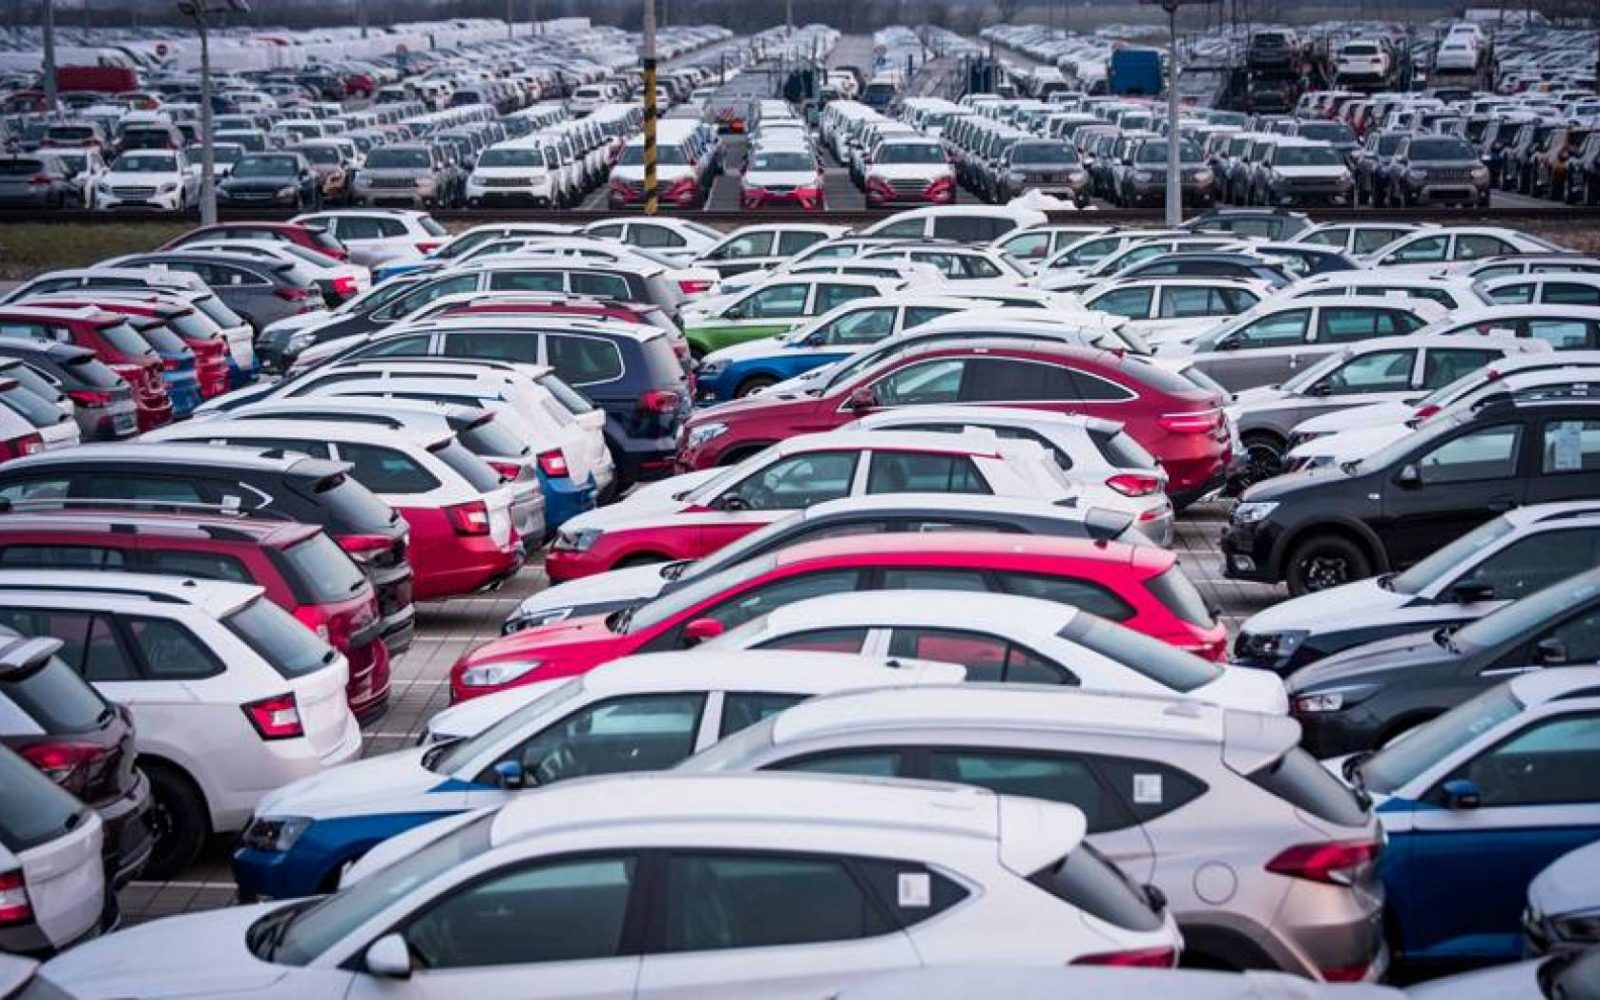 egypt automotive sector continued fluctuations